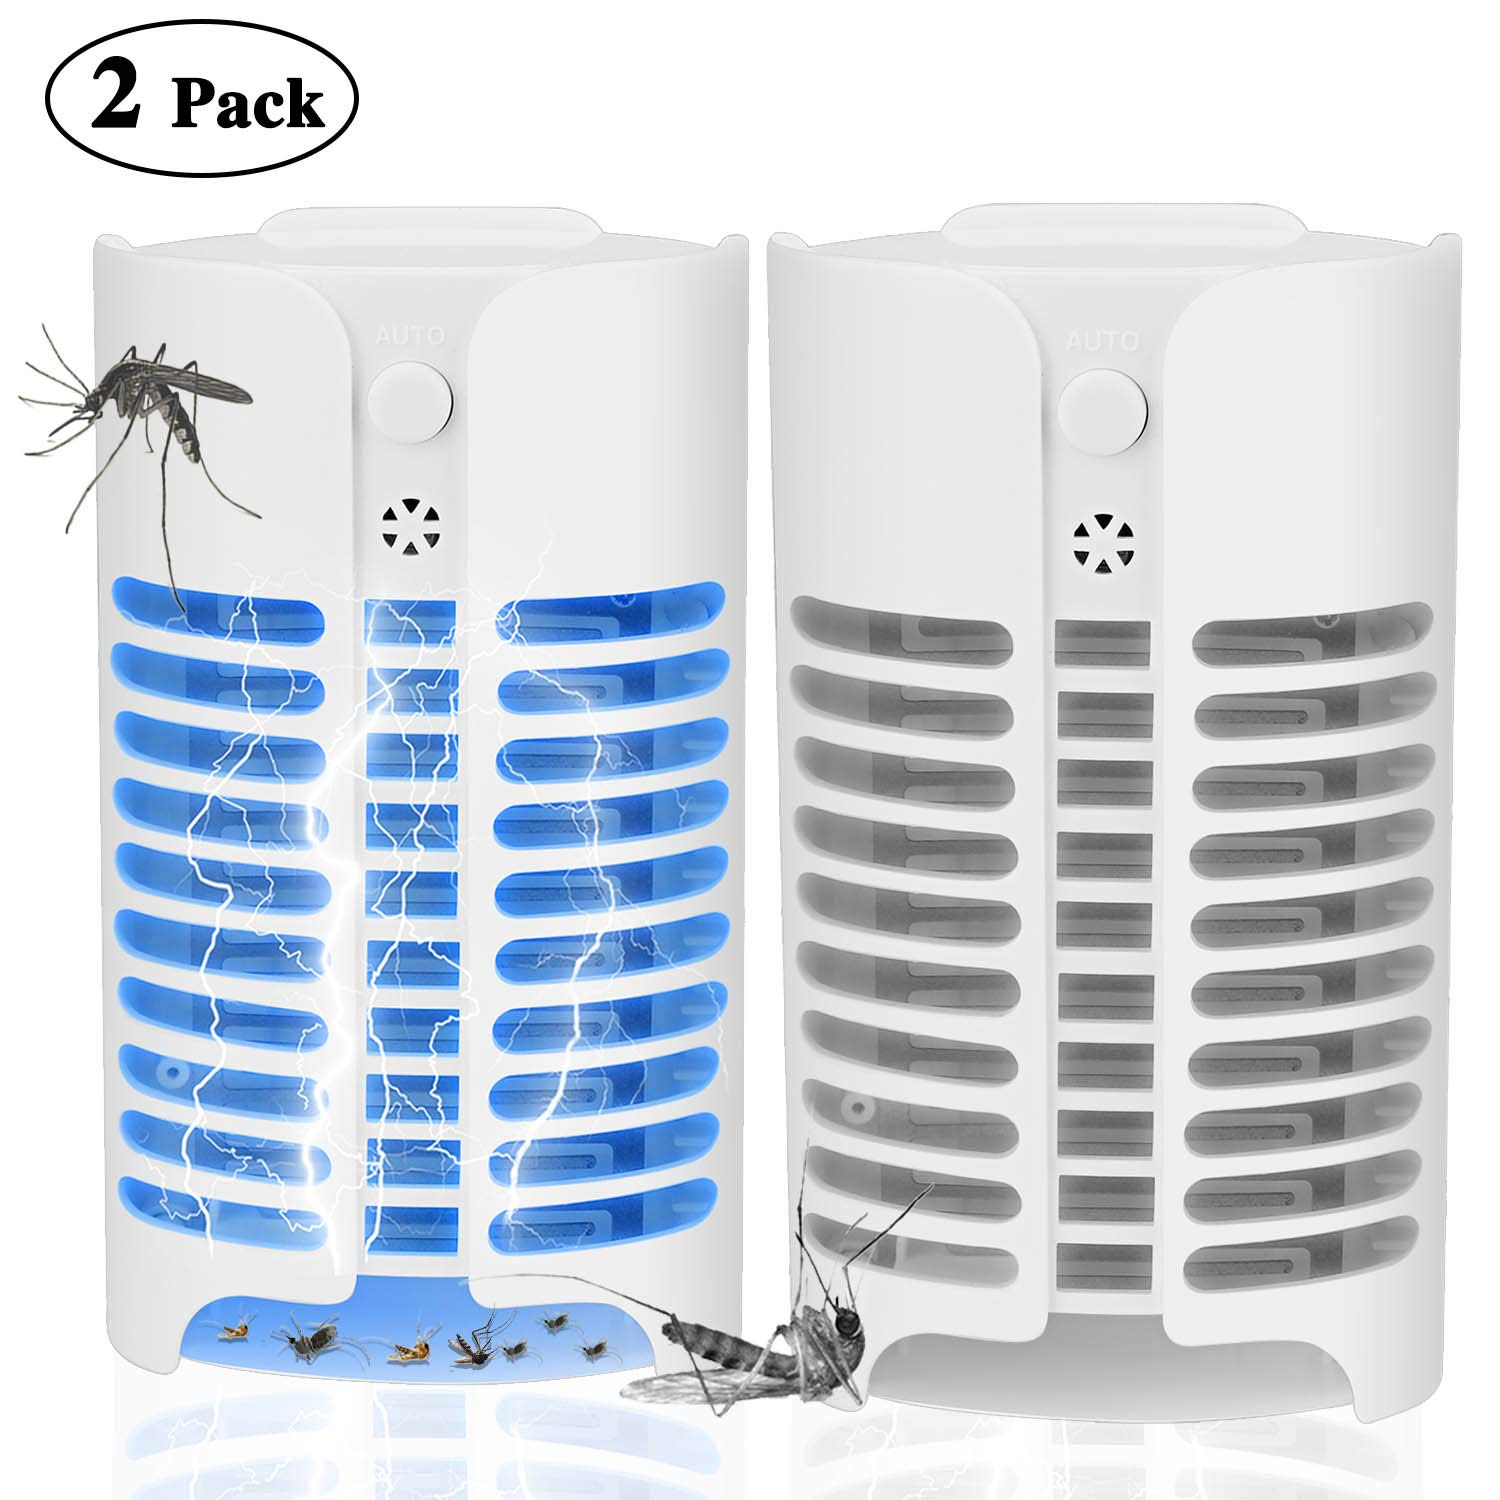 KAEN Electric Indoor Bug Zapper, Mosquito Killer, Insect and Fly Zapper Catcher Killer Trap with UV Night Sensor Light for Home, Office and Patio Indoor Use by KAEN